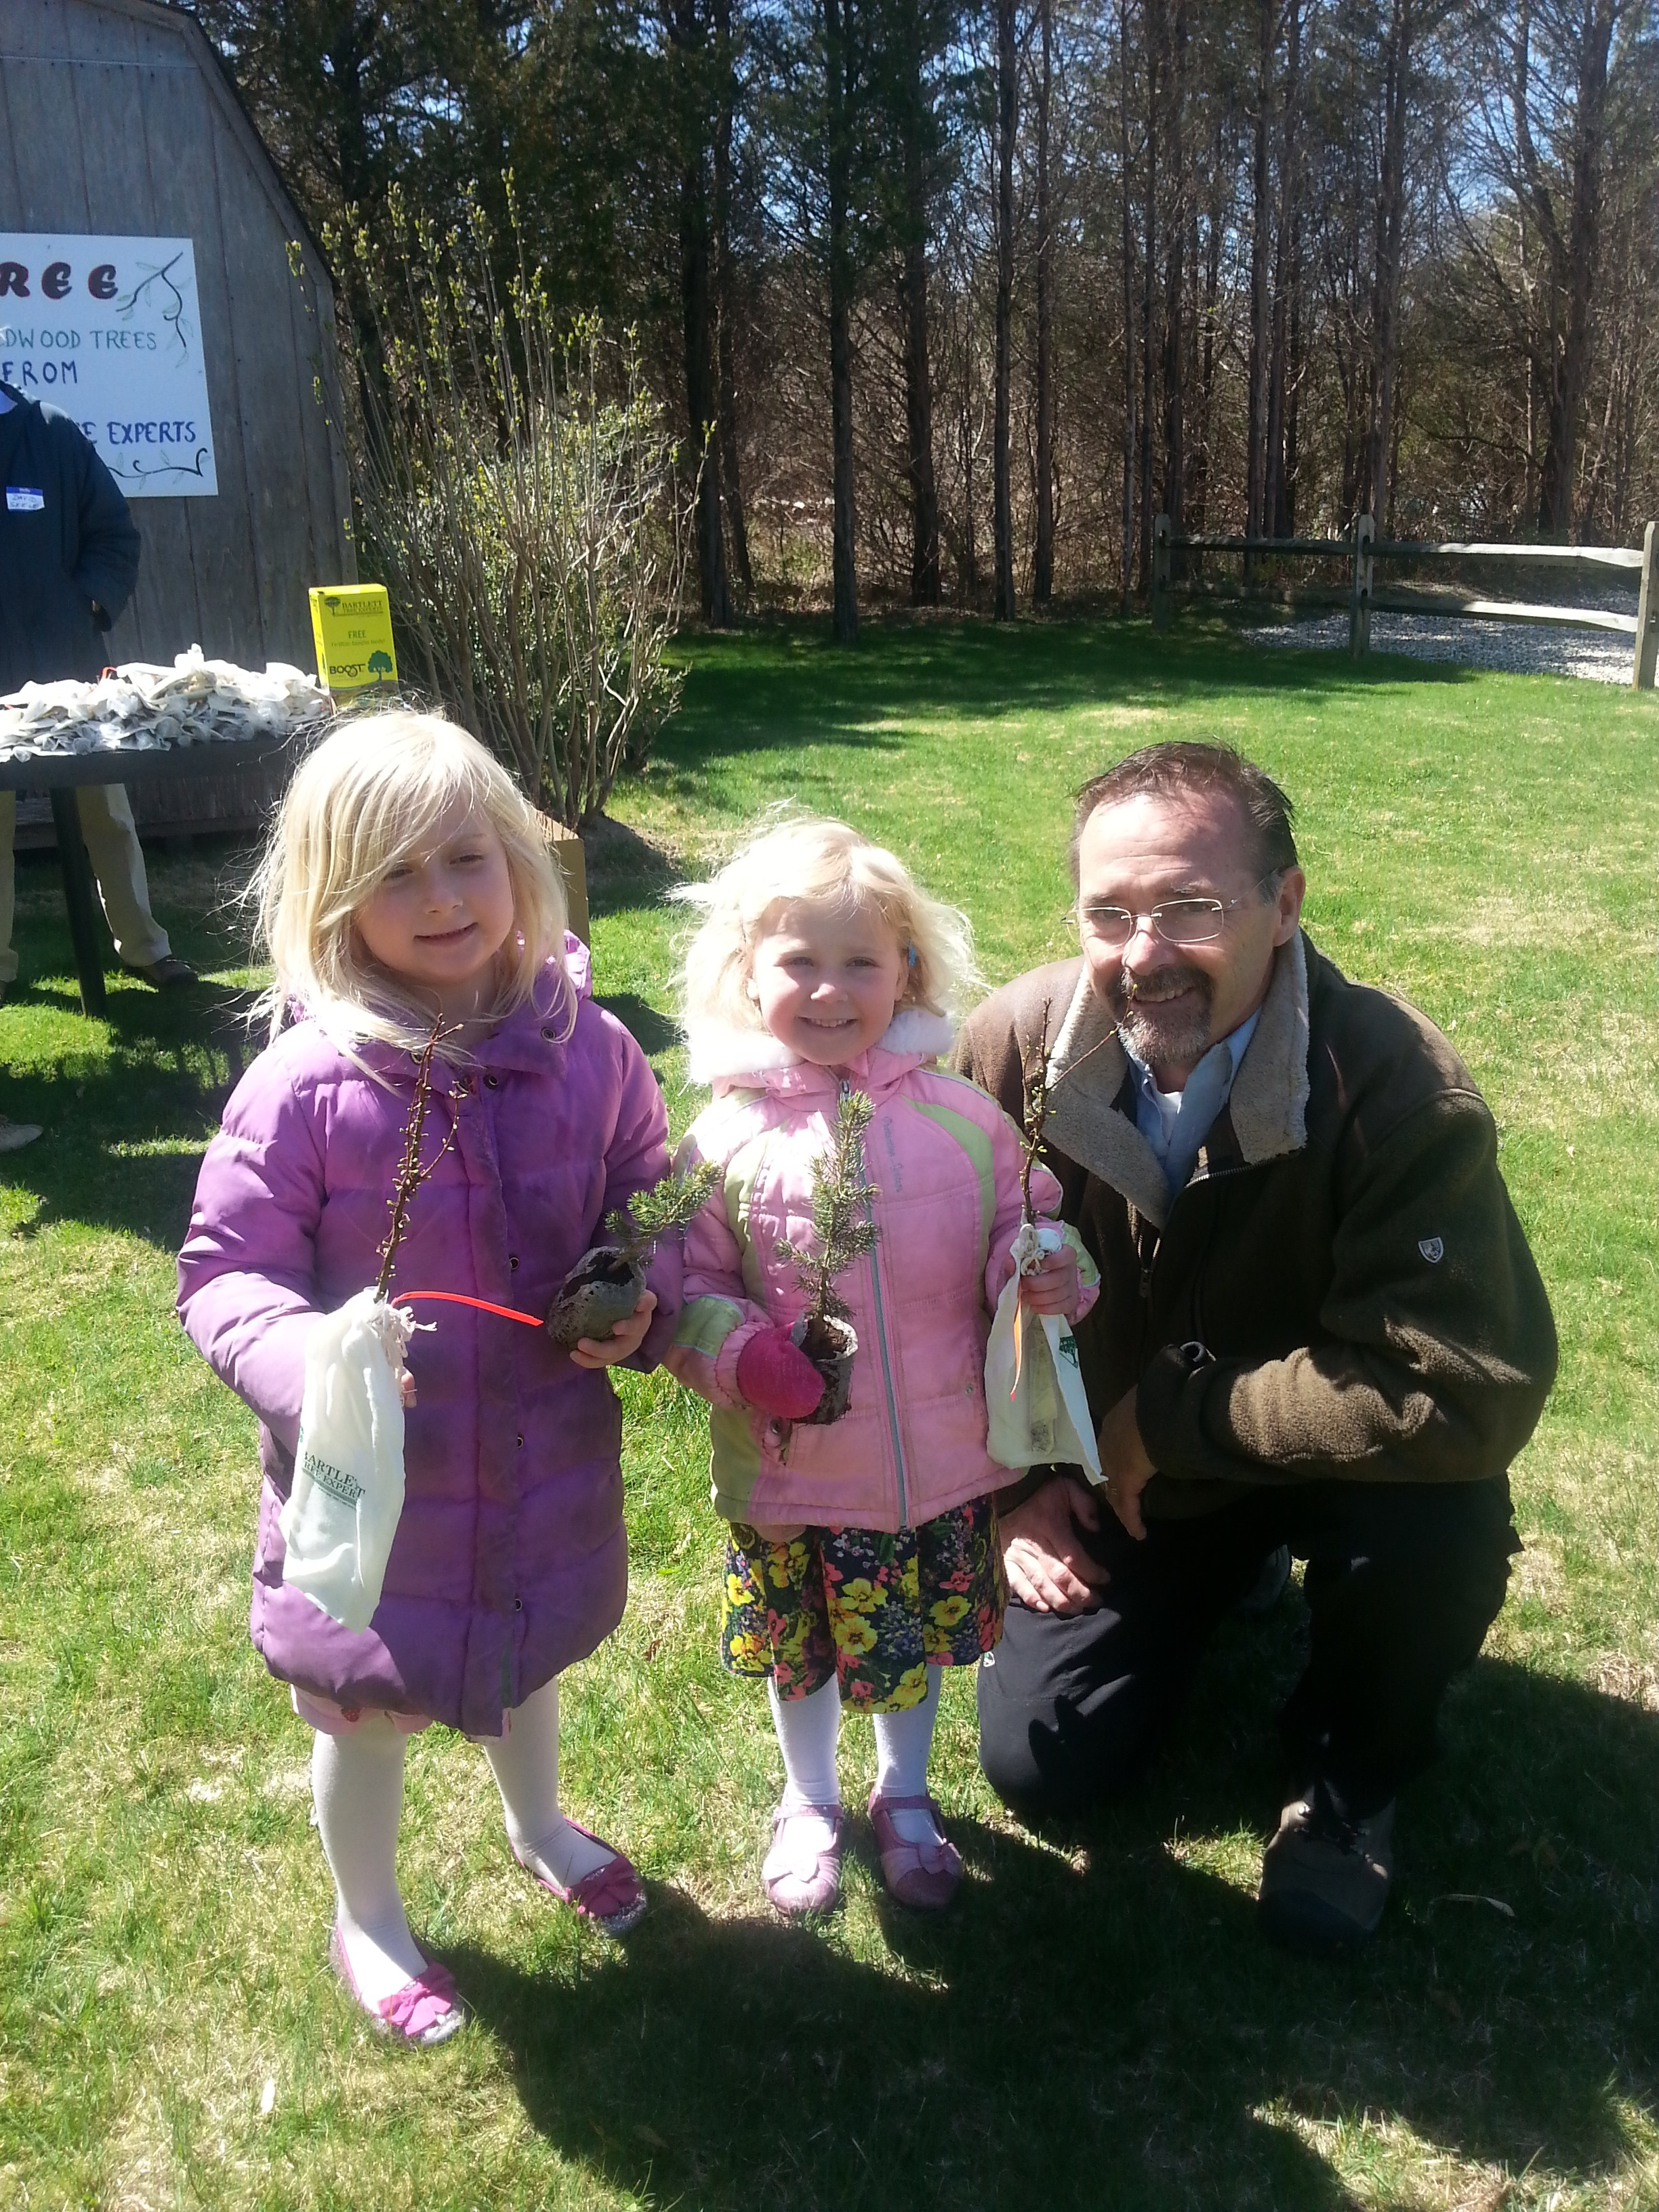 sagaponack e1430854617977 - Arbor Day and Earth Day 2015